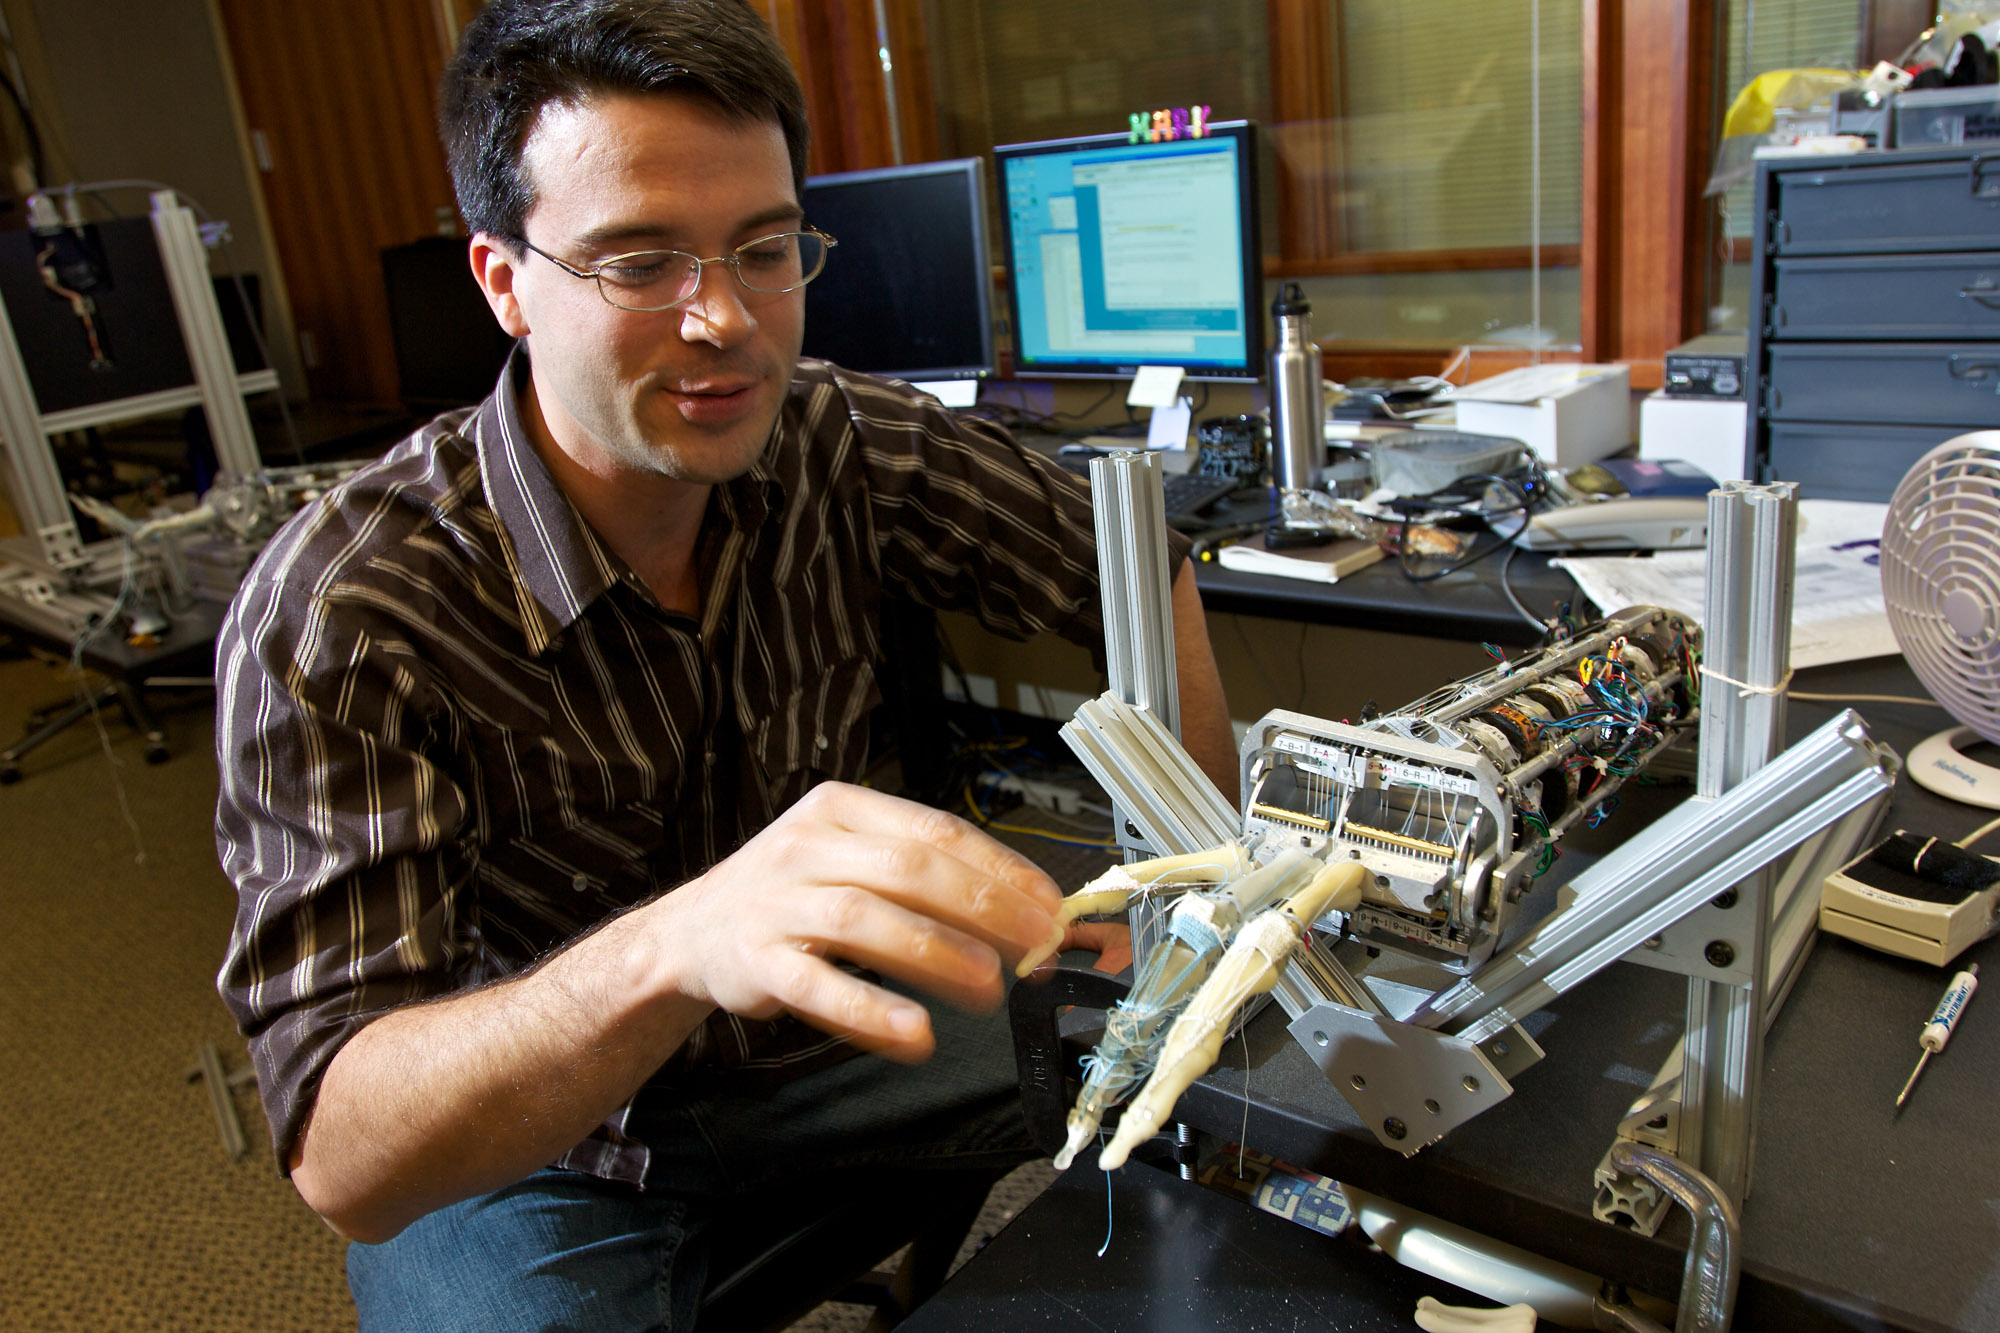 UW doctoral student Eric Rombokas with a prototype prosthesis built in the Neurobotics Lab.